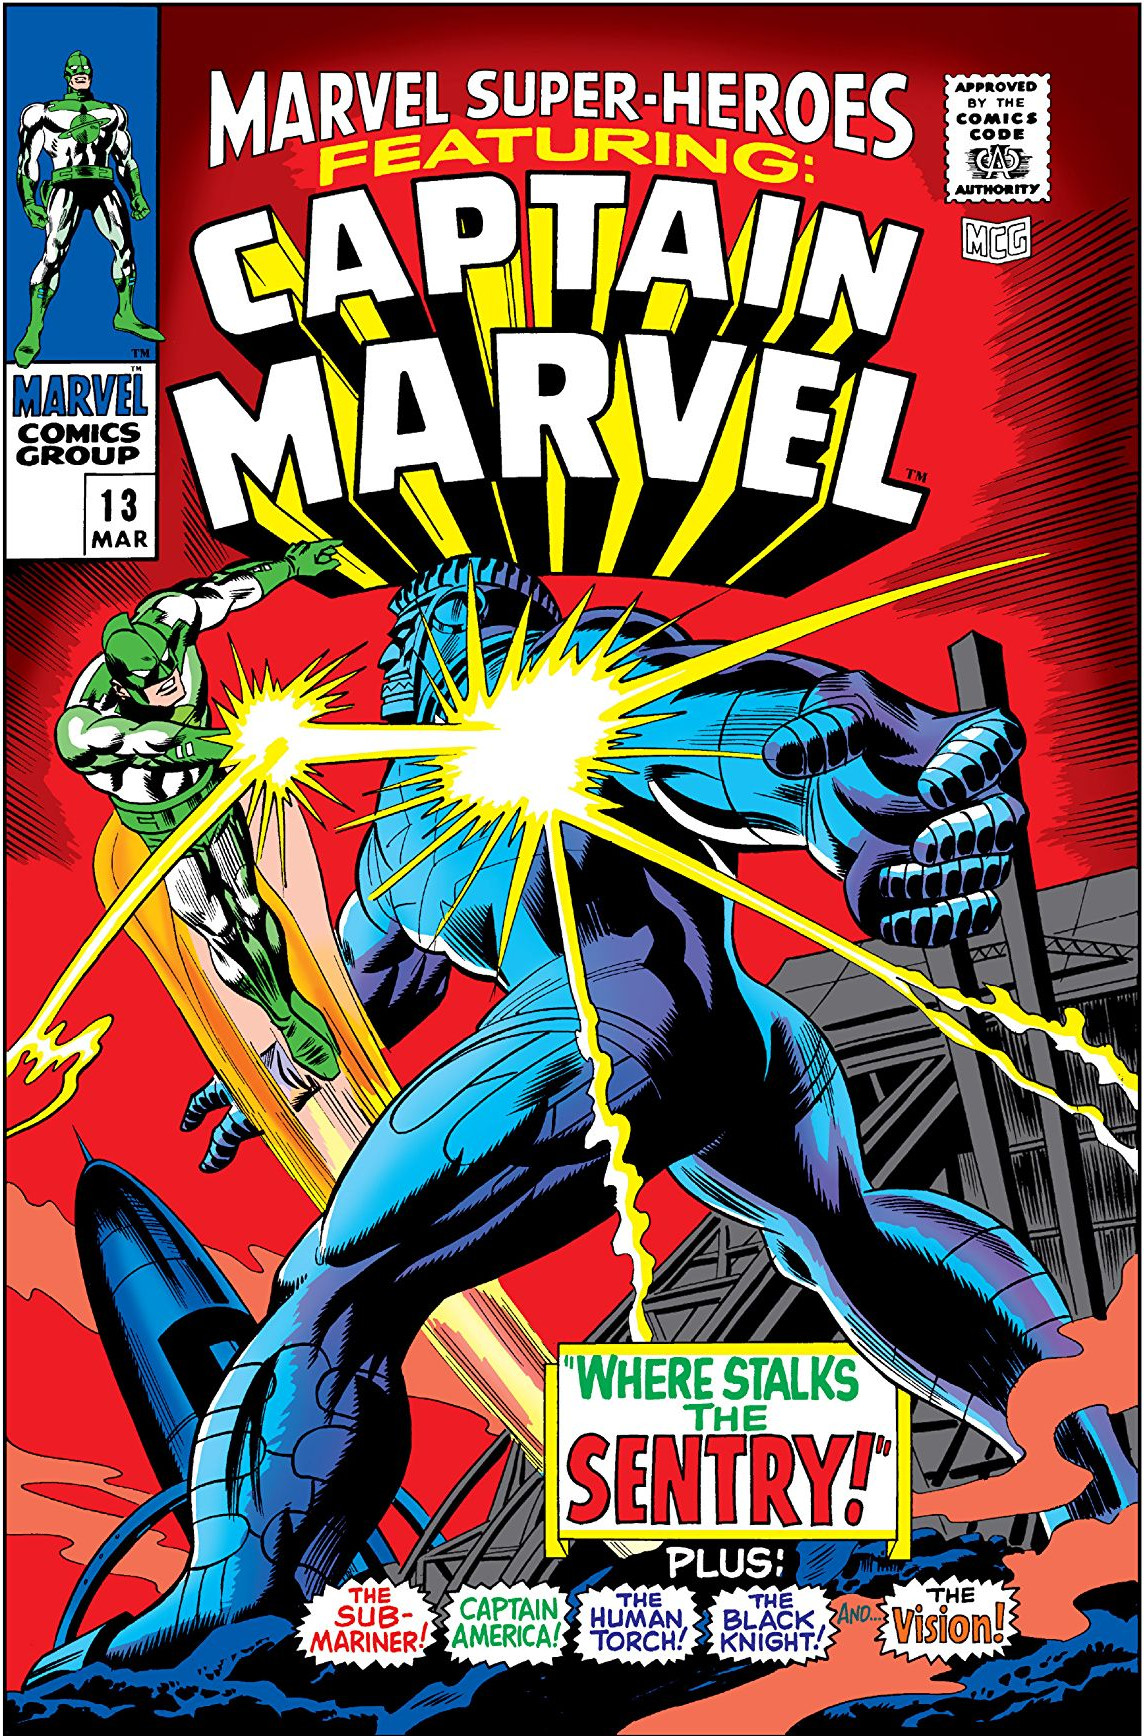 Marvel Super Heroes' (1968) #13, marks the first appearance of Ms. Marvel in Marvel continuity. The cover shows Mar-Vel taking on Sentry.